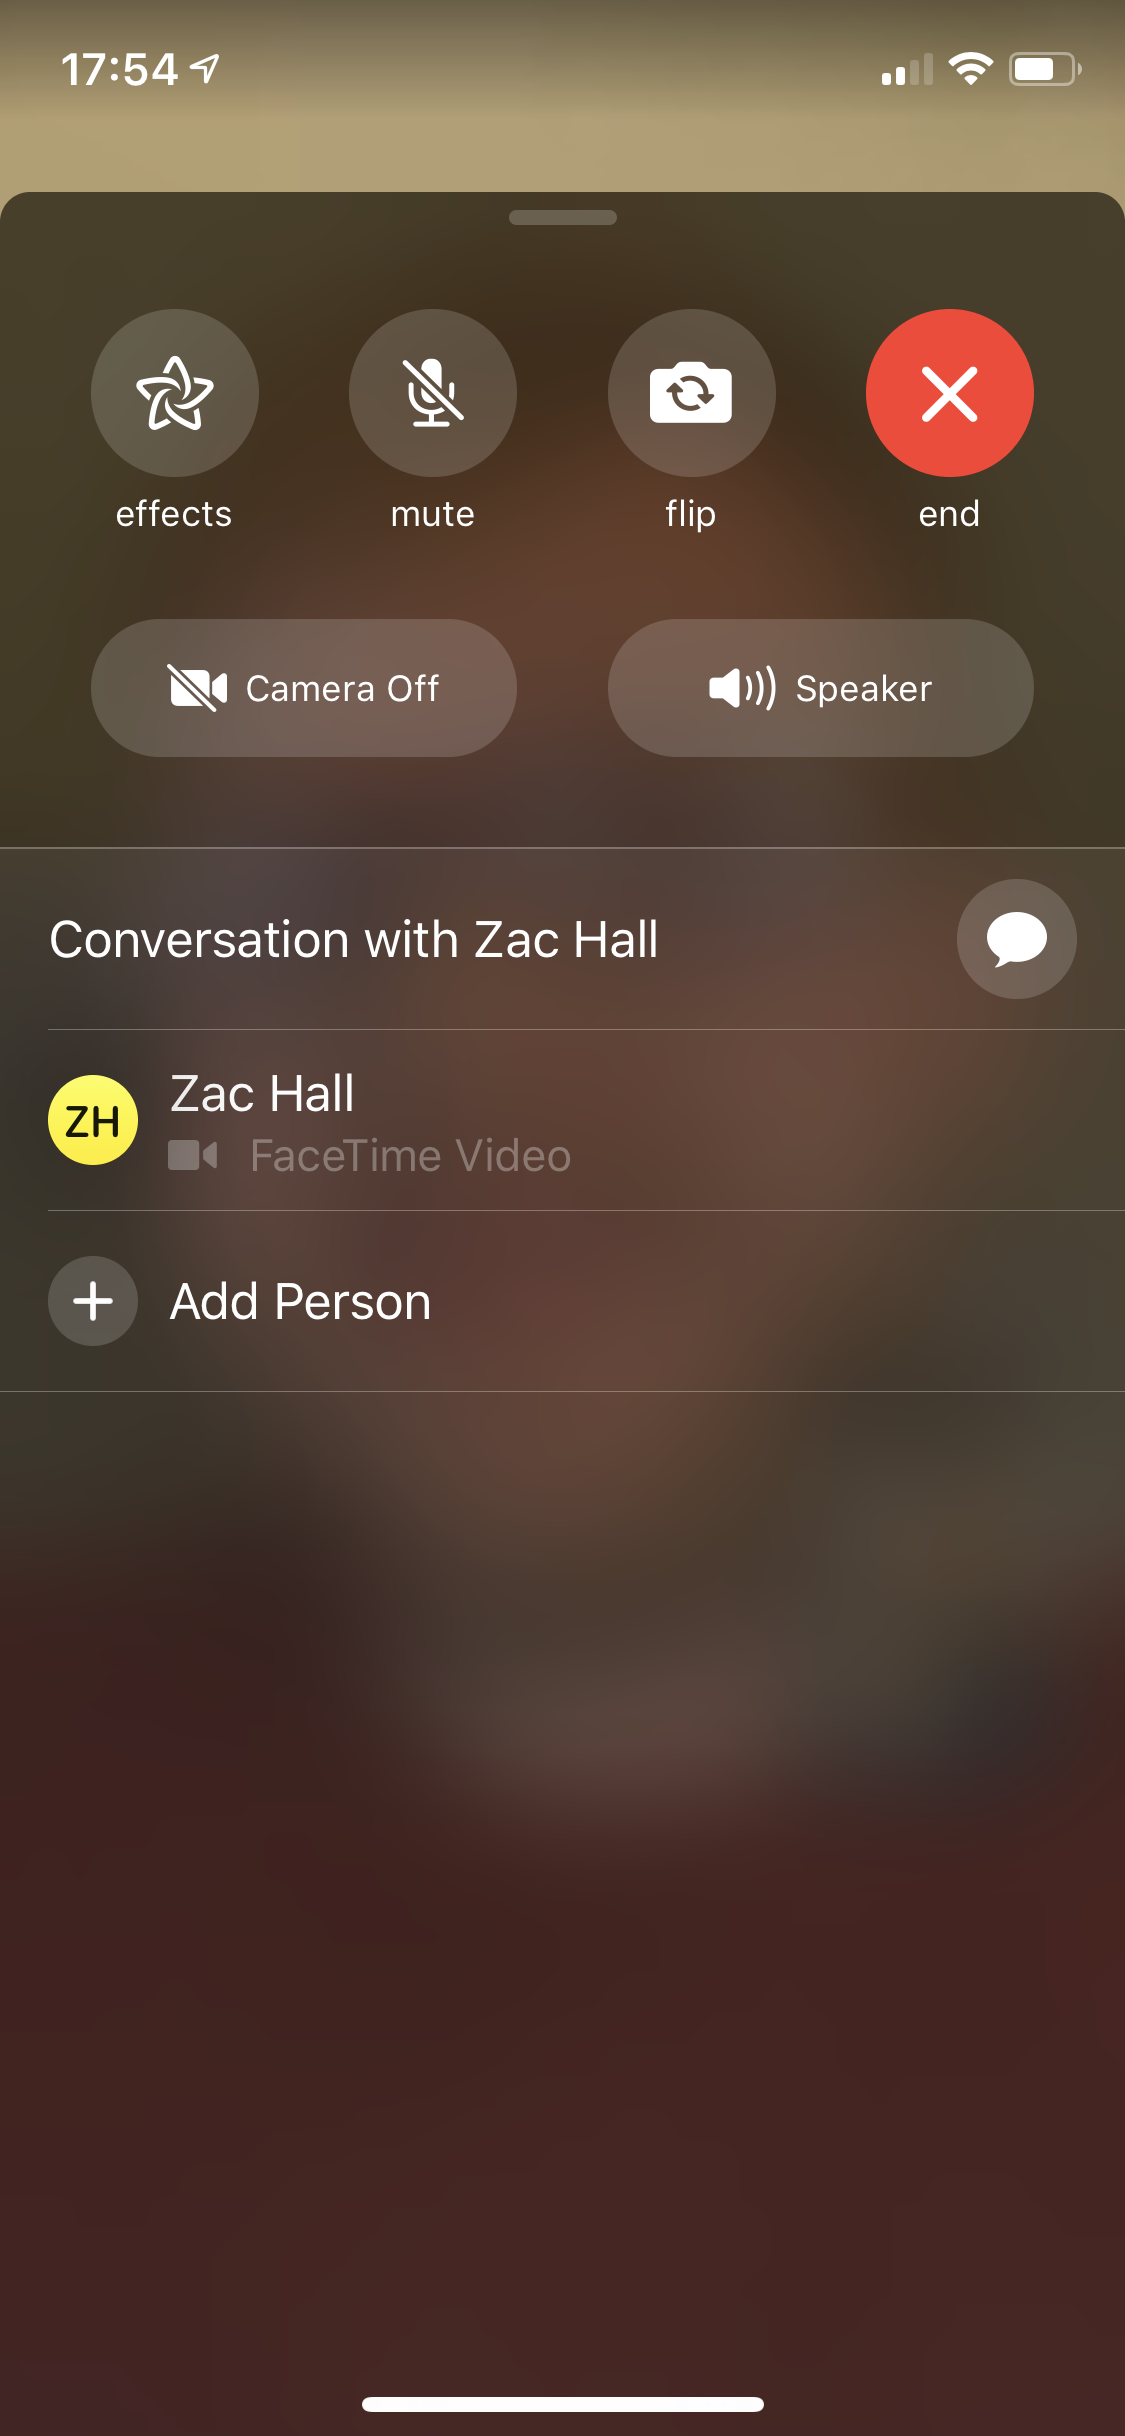 FaceTime Live Photos returns in iOS 12 1 1, flip camera UI